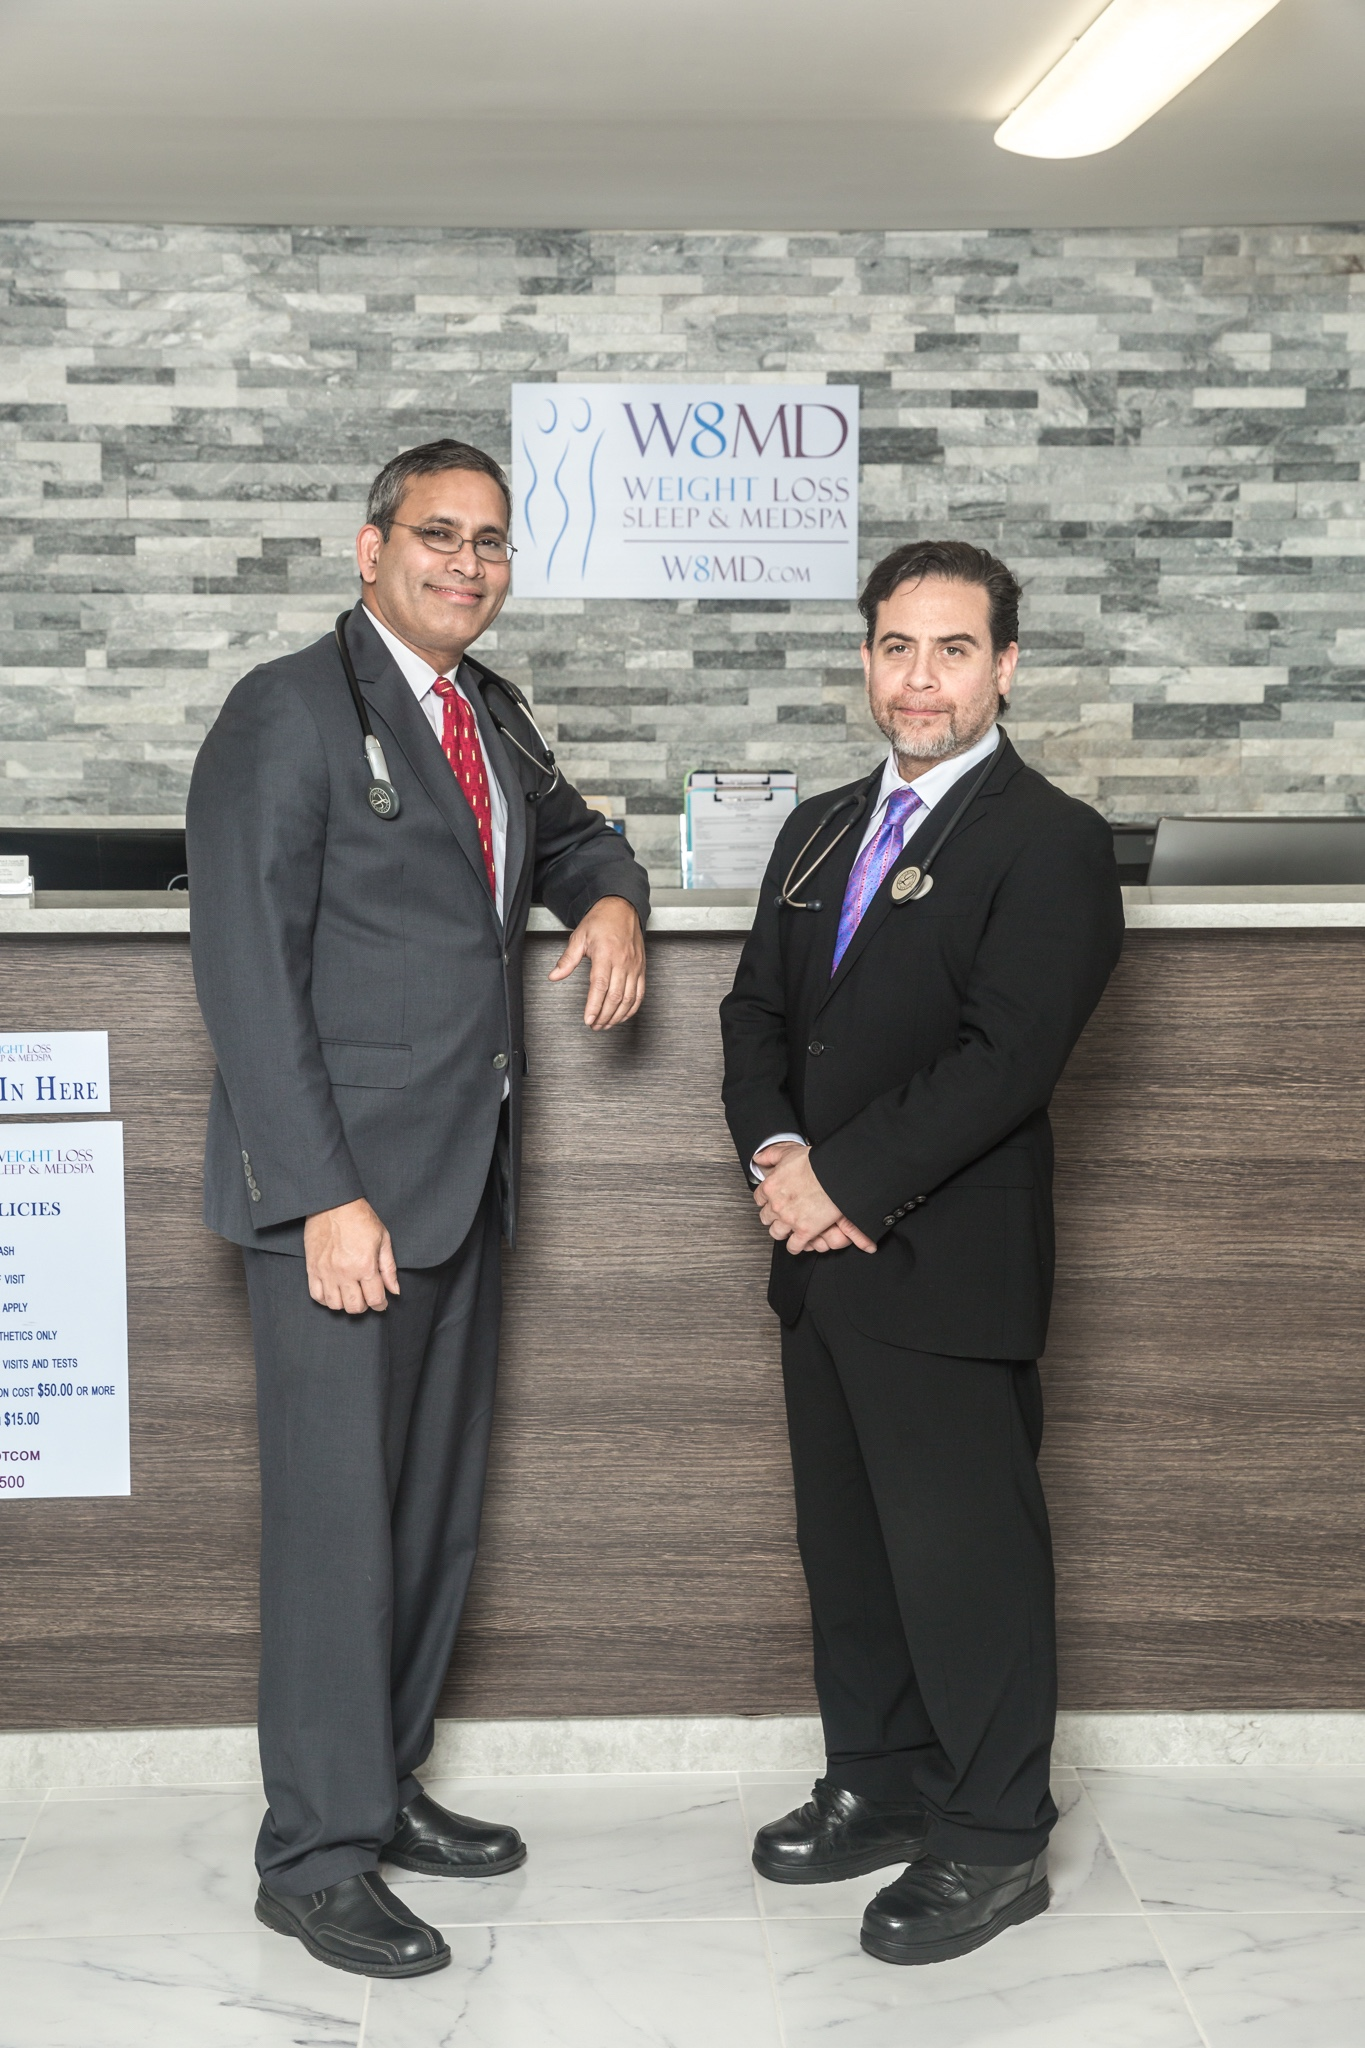 Weight loss doctors NYC